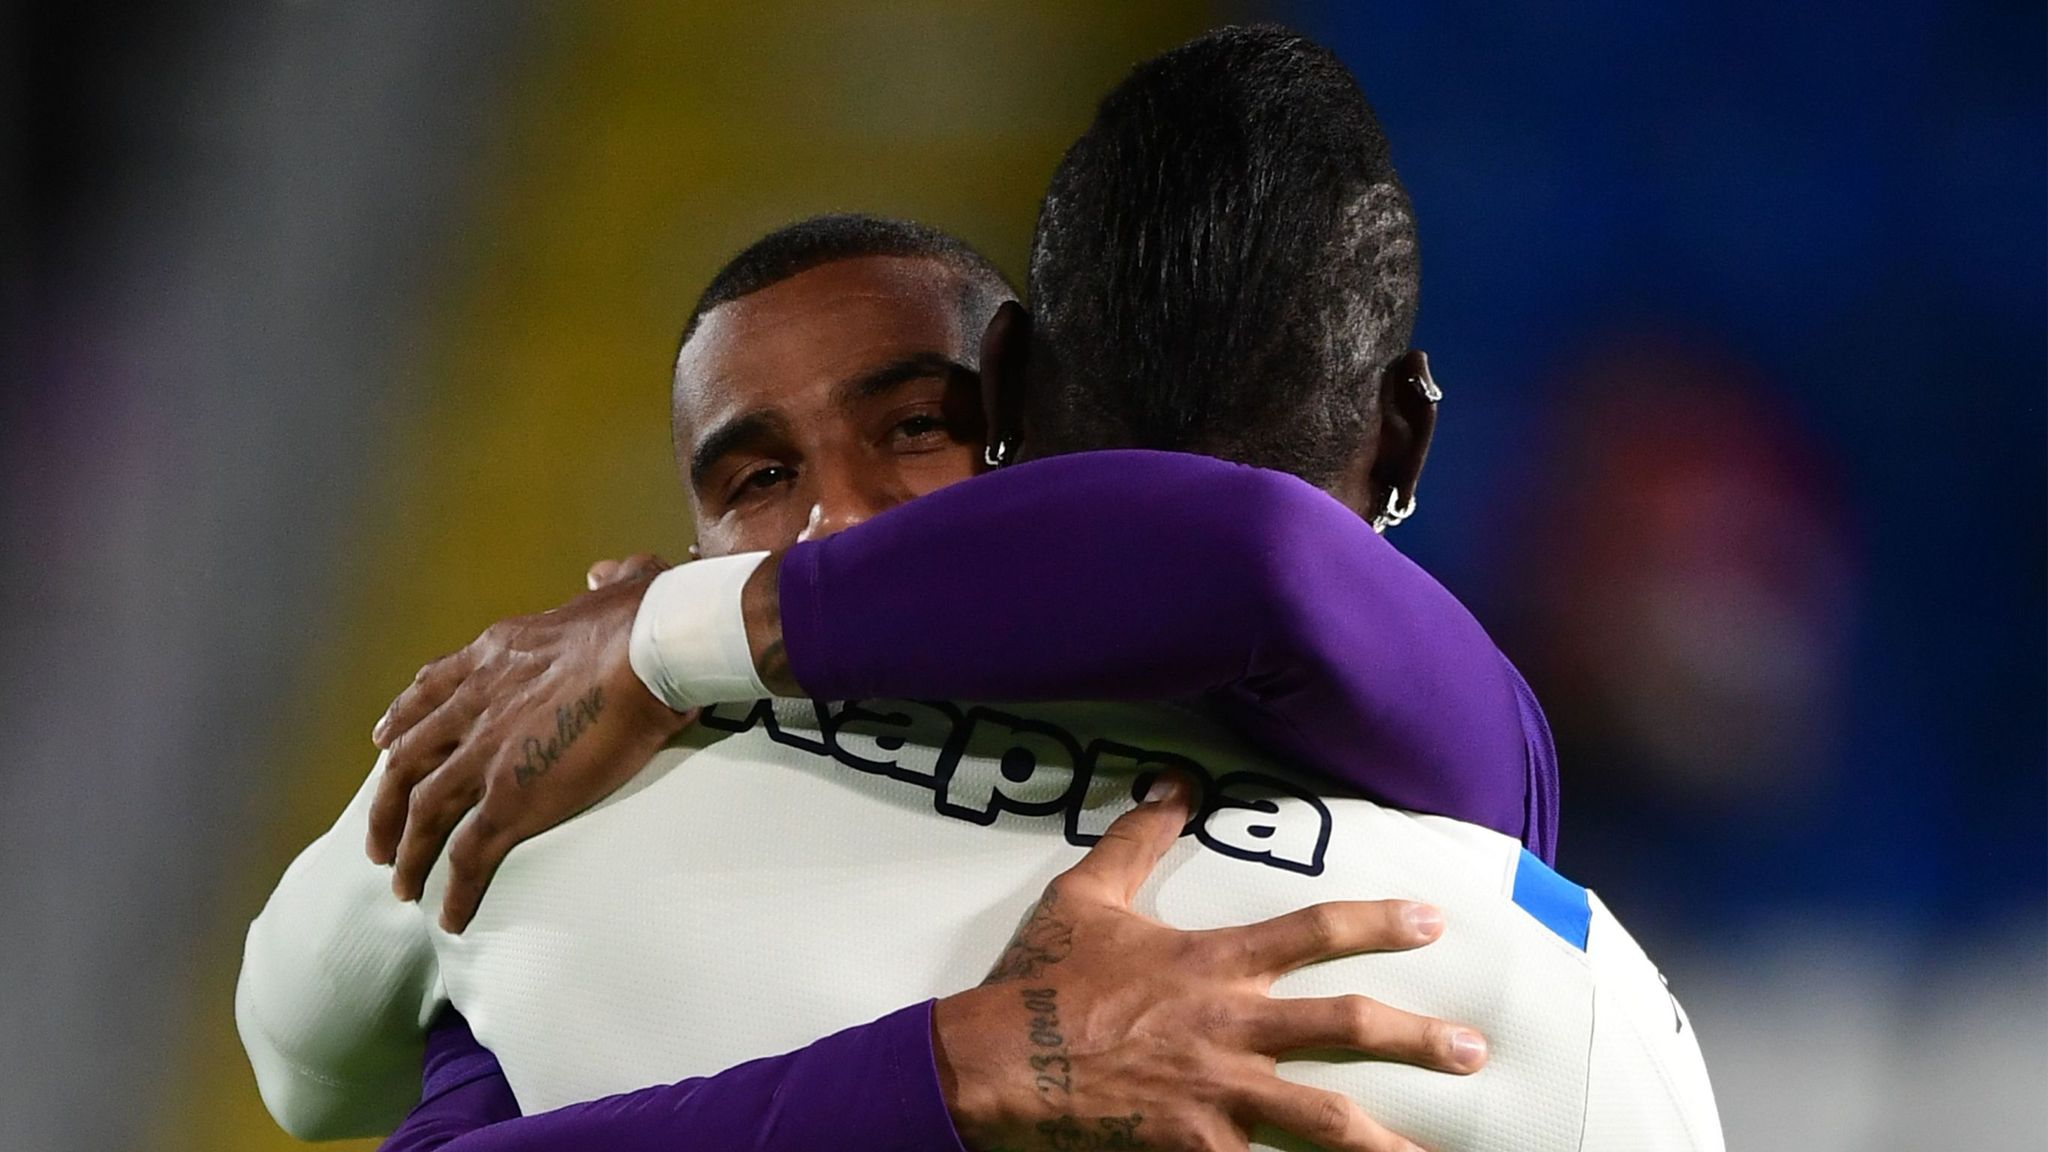 Kevin-Prince Boateng to set up 'racism task force' to tackle Serie A discrimination